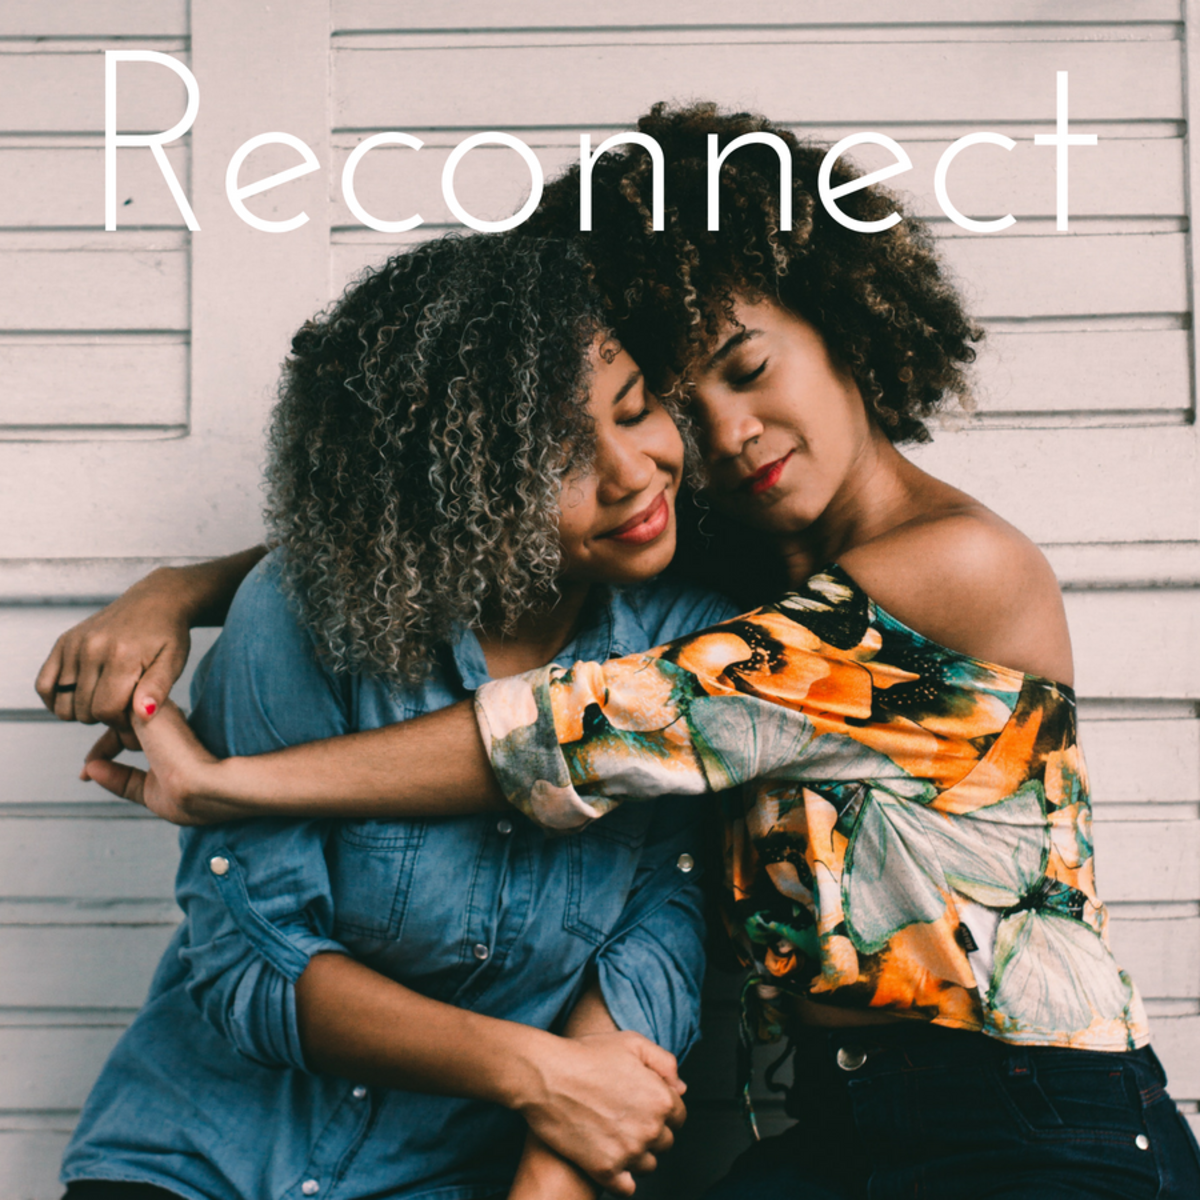 Take this time to reconnect with your friends, family, and self.